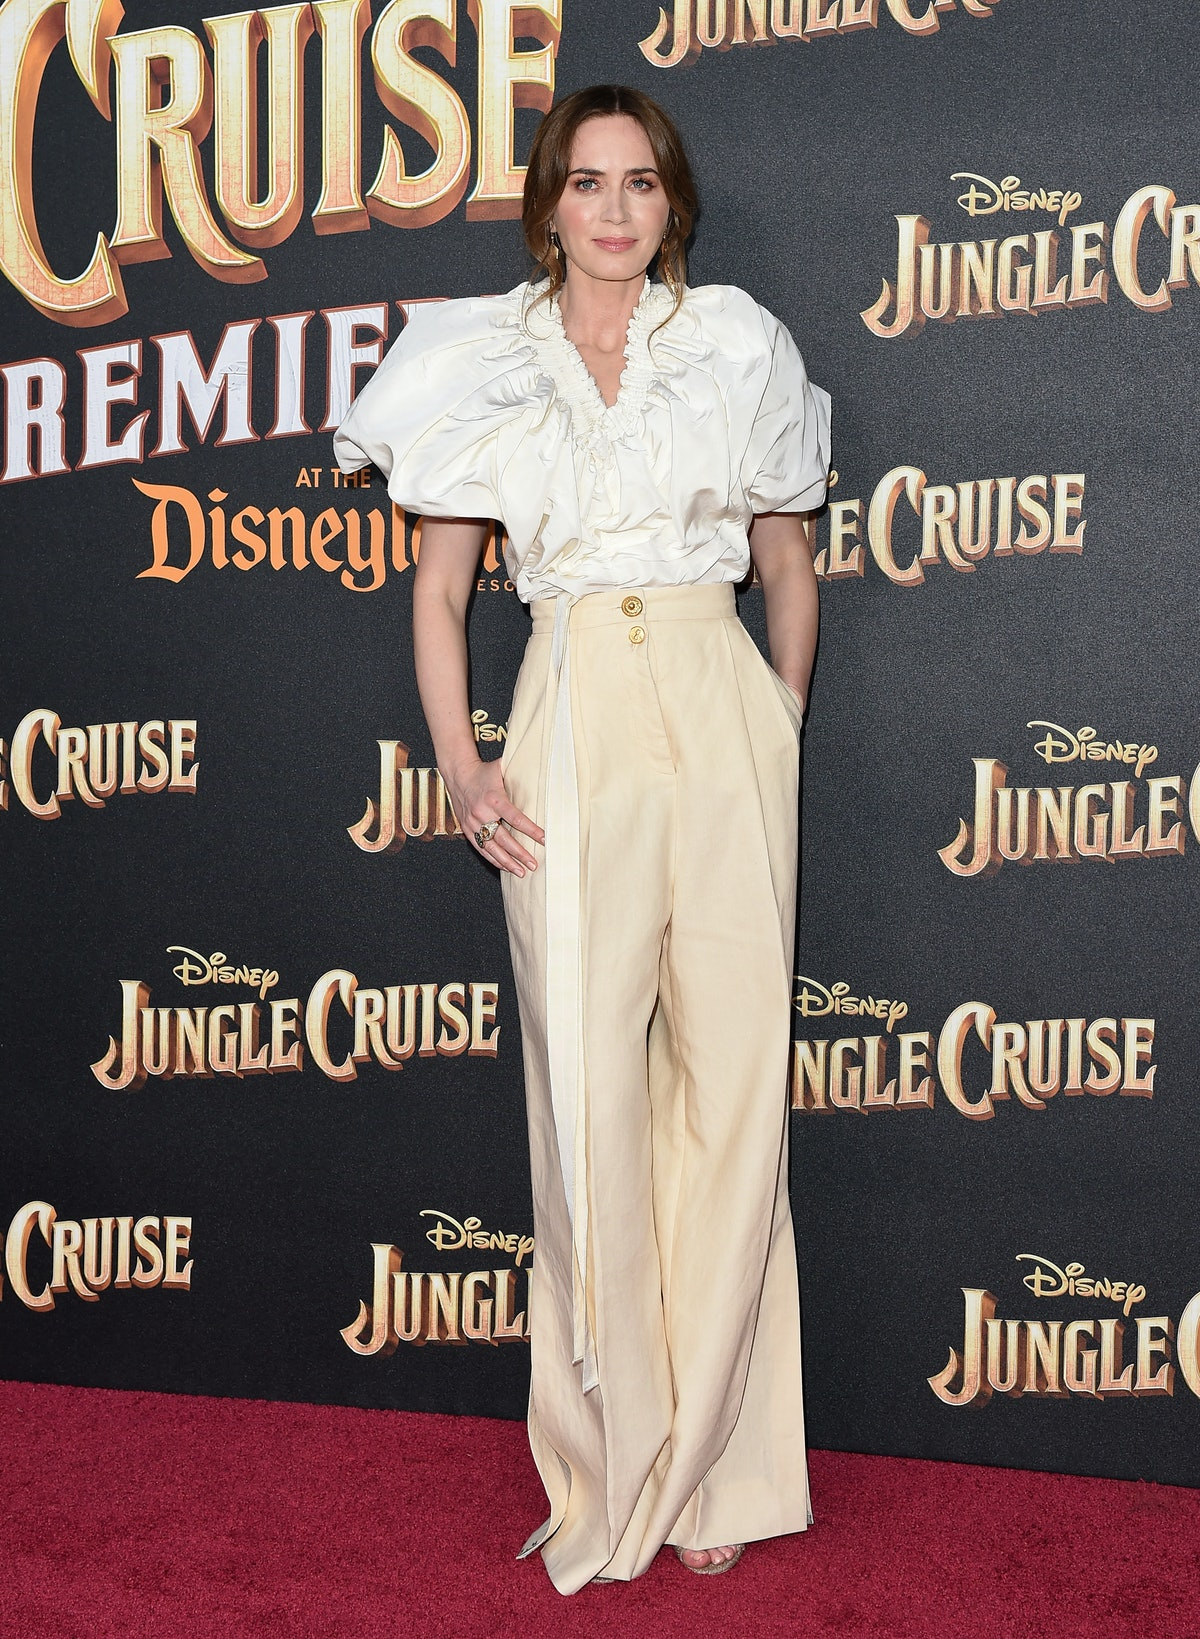 Emily Blunt in a blouse and pants.